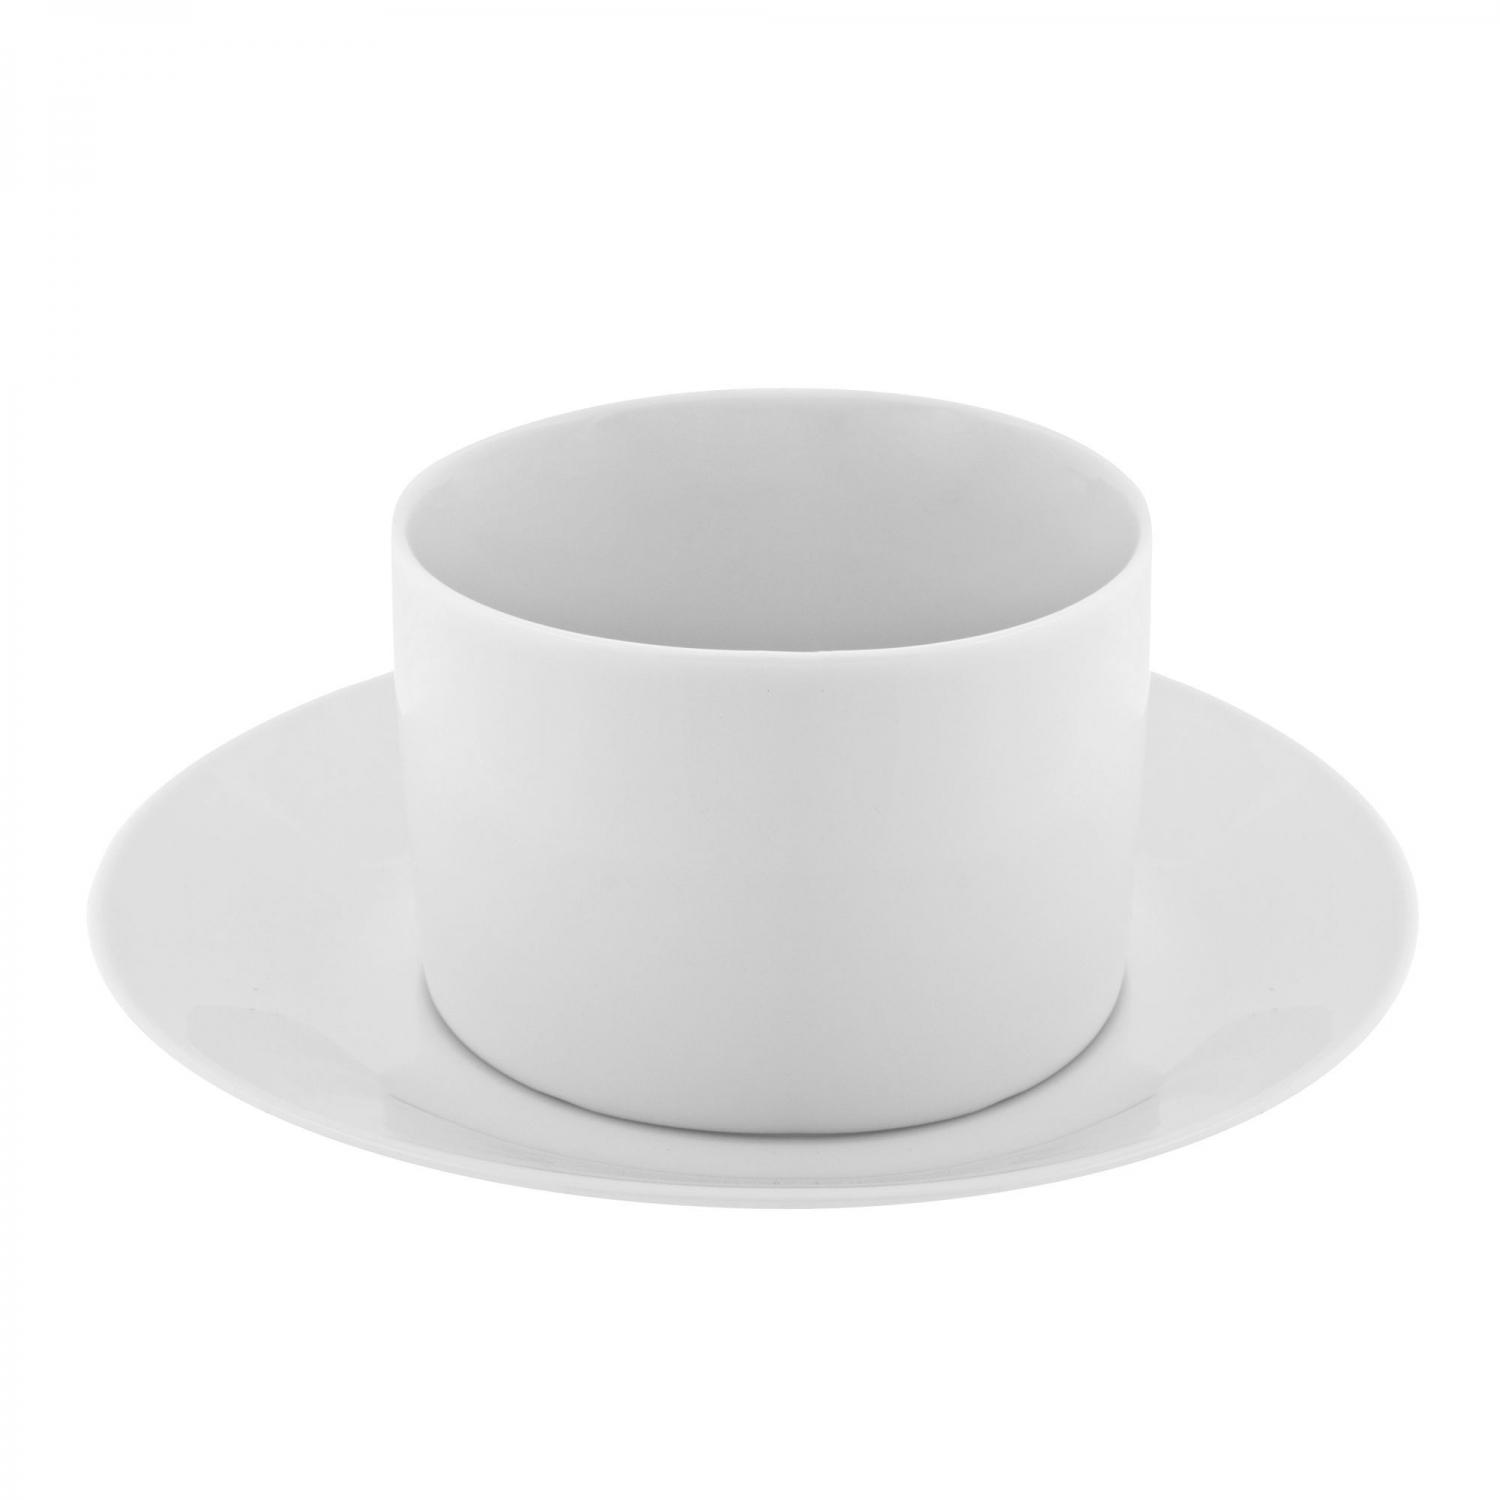 10 Strawberry Street RW0009NOHANDLE 8 oz. Royal White Can Cup and Saucer Set - 24 pcs